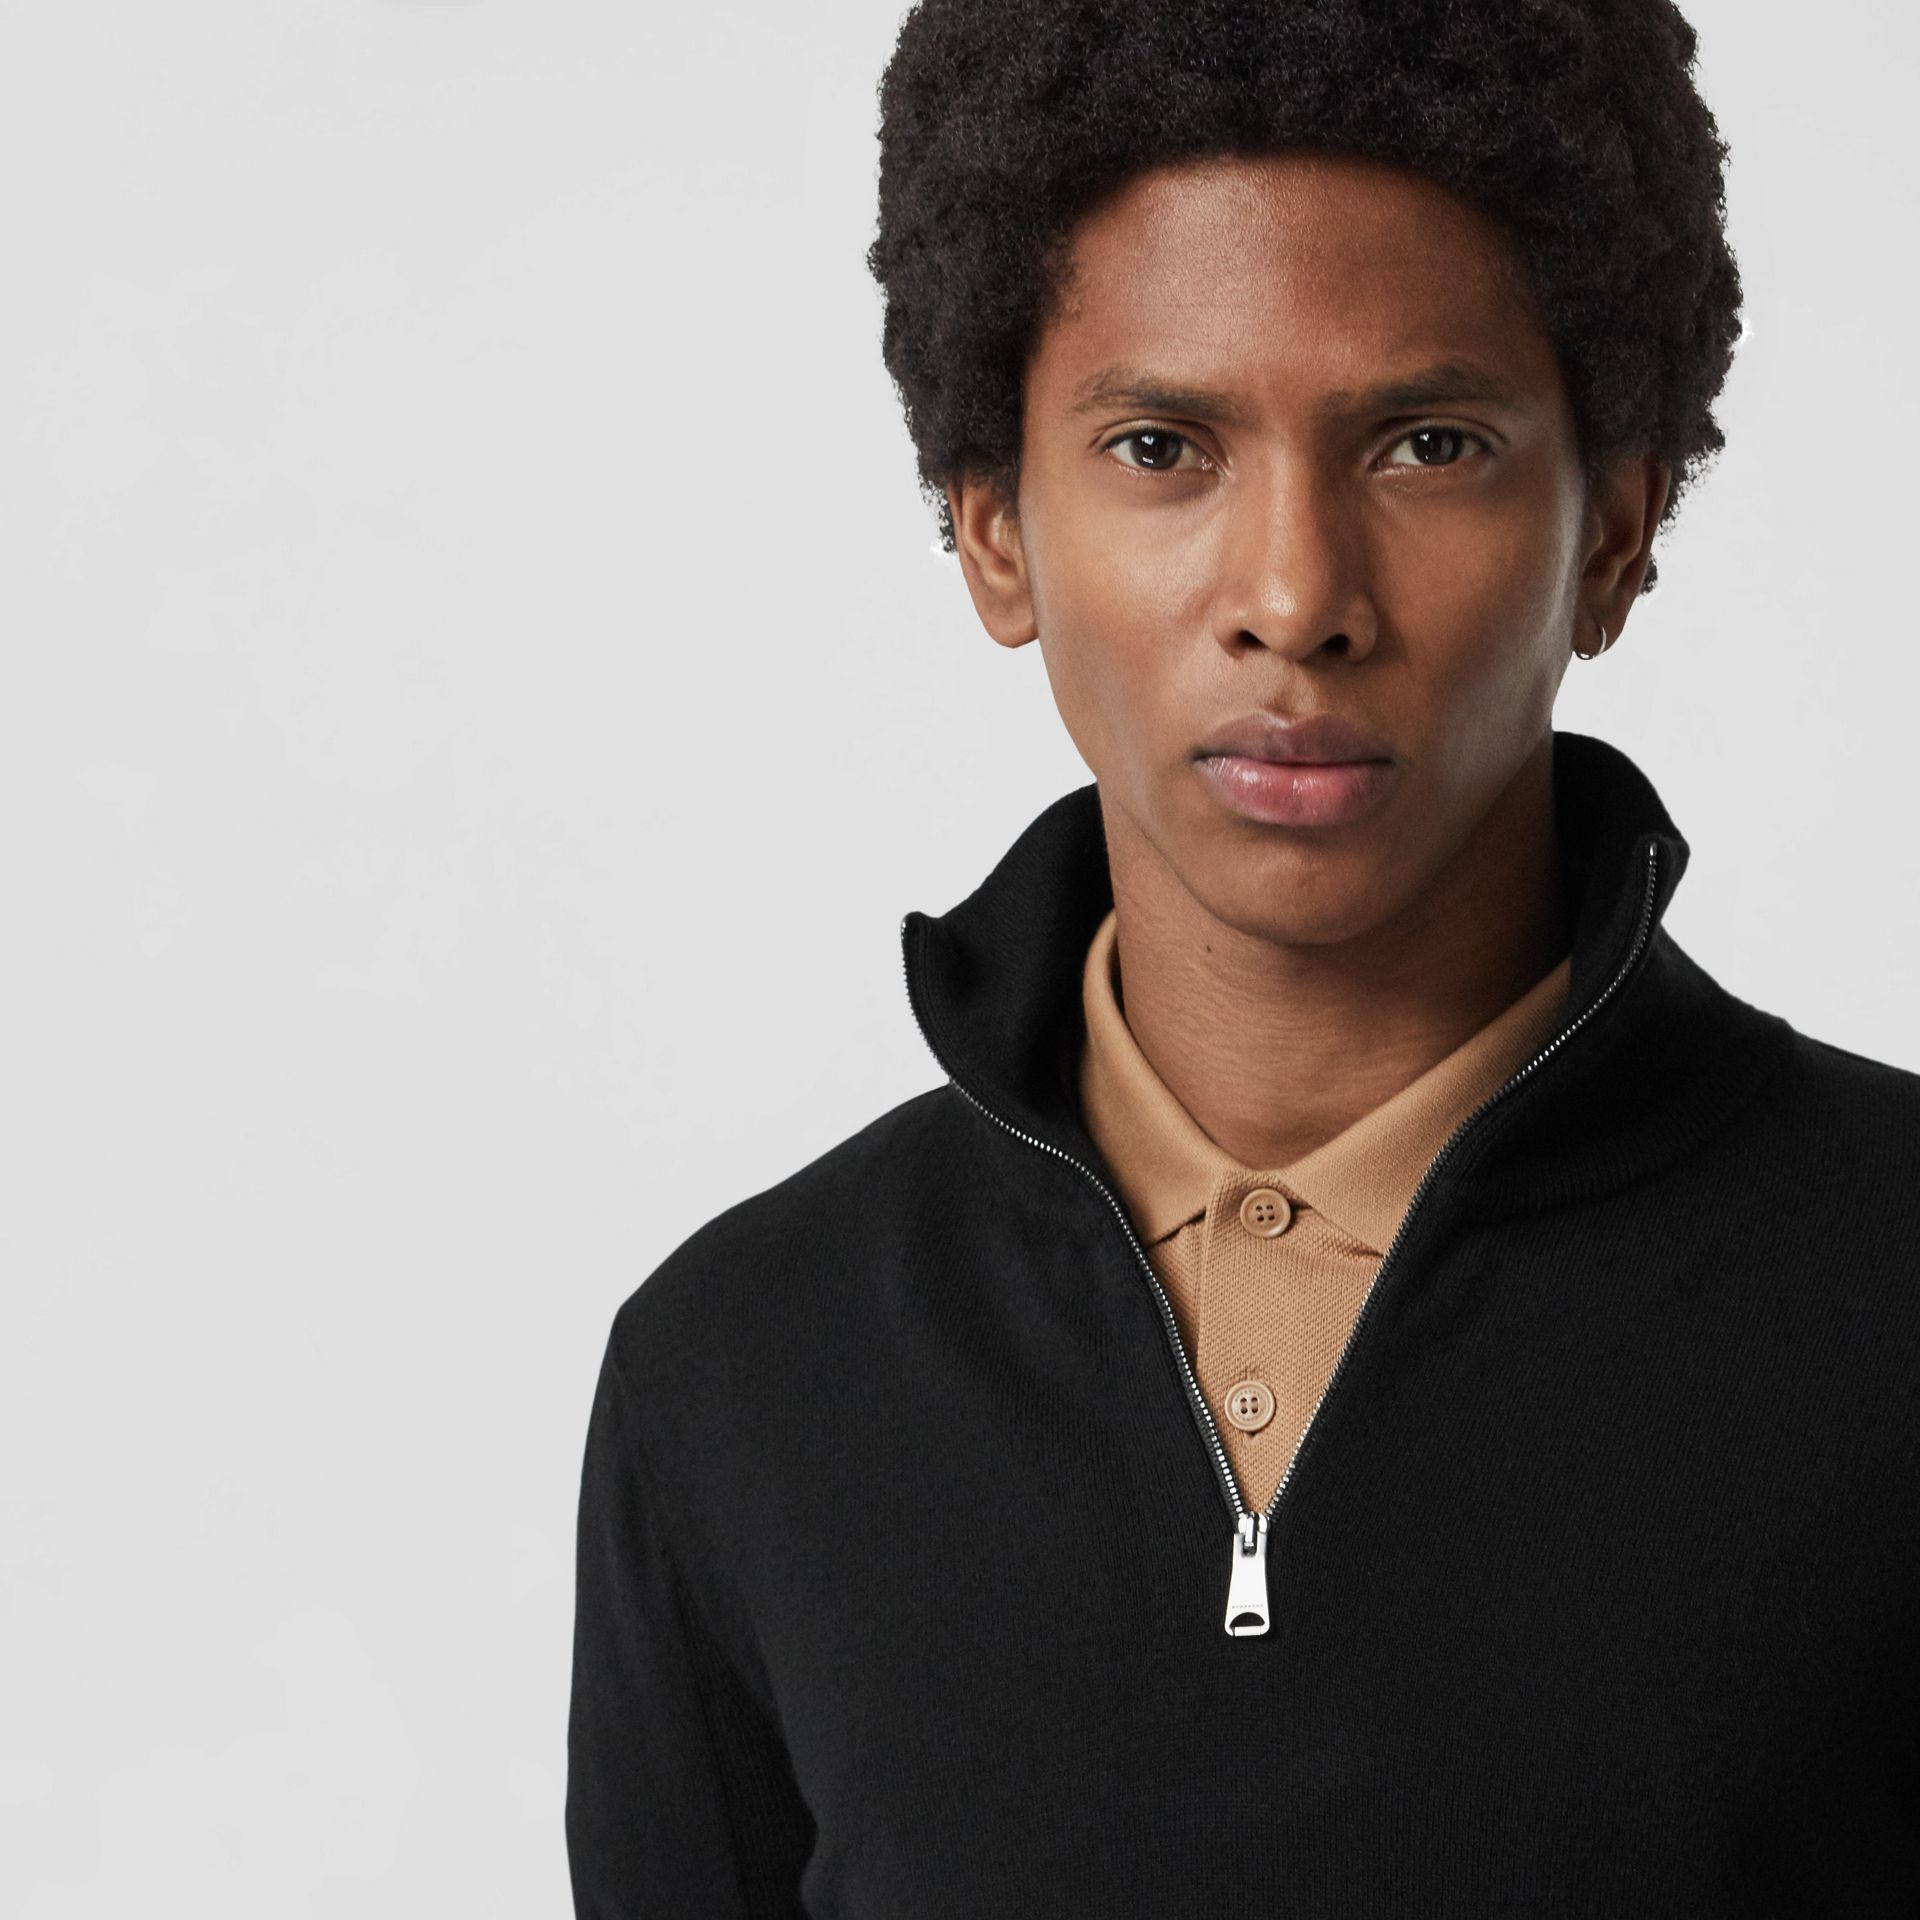 Merino Wool Half-zip Sweater in Black - Men | Burberry - gallery image 4